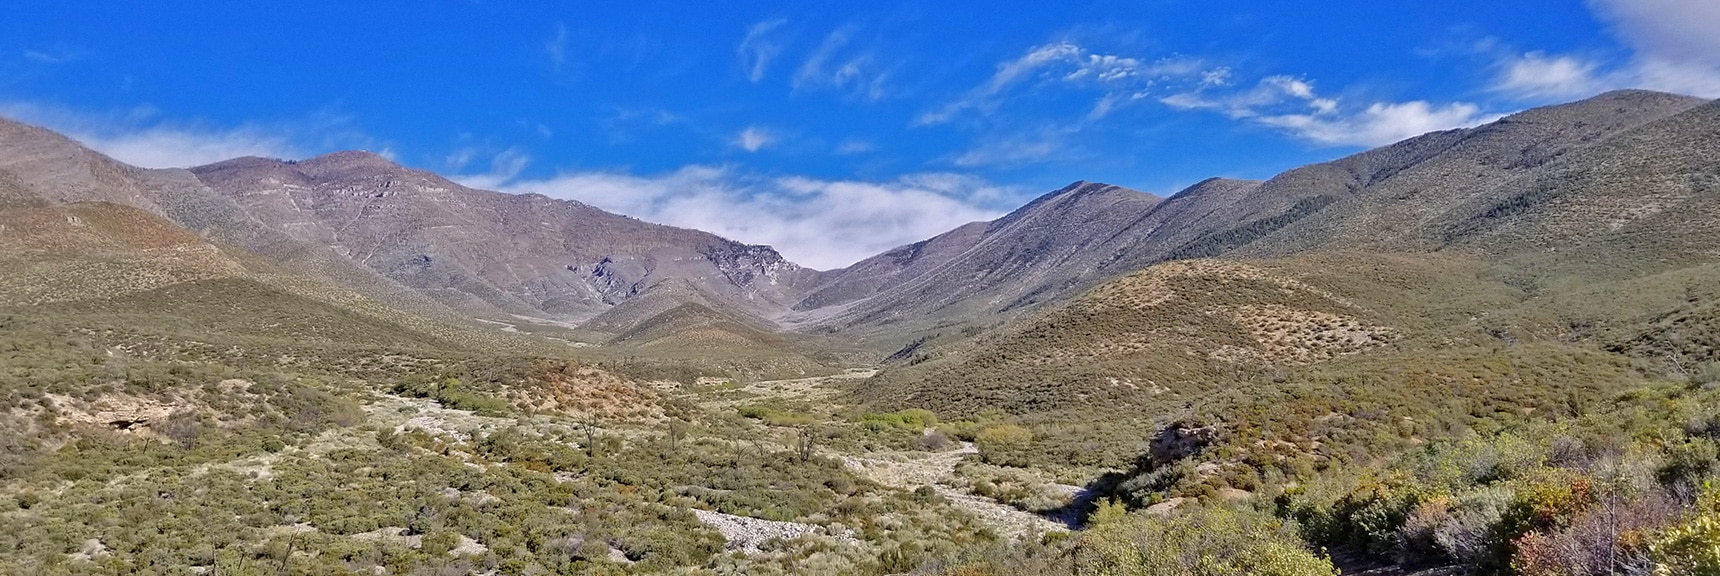 Lovell Canyon, Griffith Peak, Harris Mt. and Saddle from East Side of Canyon. | Harris Mountain from Lovell Canyon Nevada